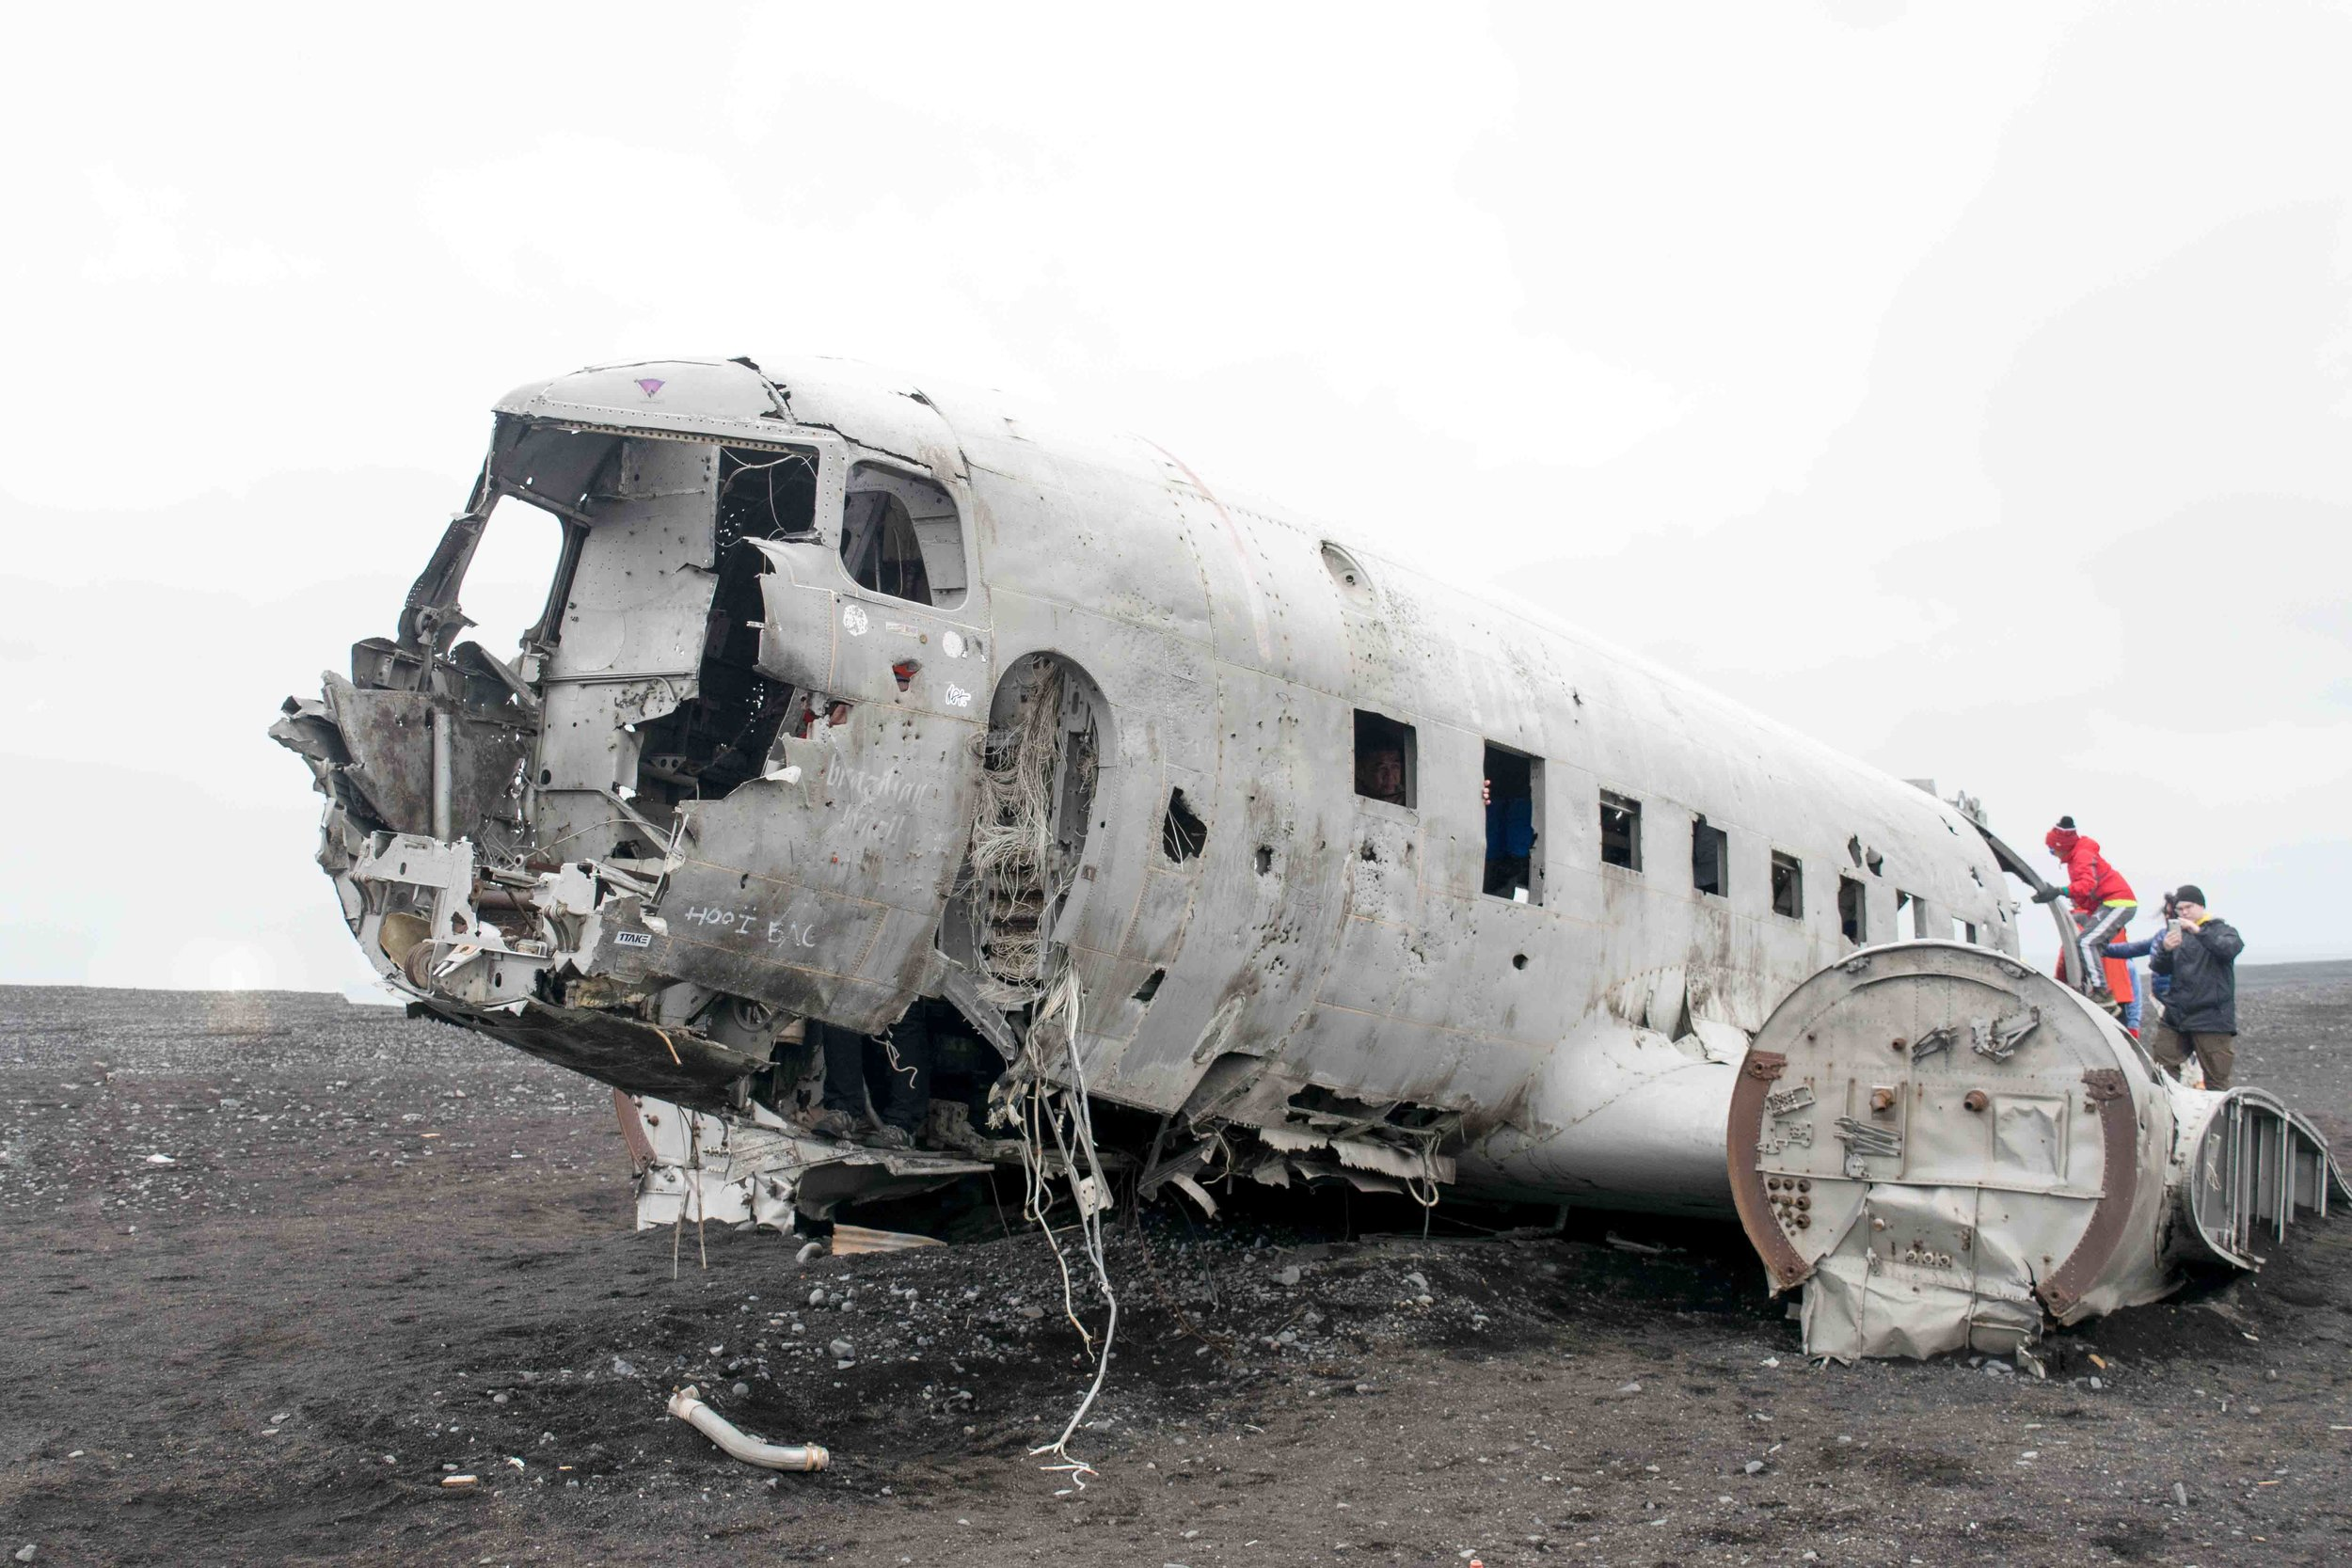 Don't miss the Solheimasandur Plane Wreck while in Iceland